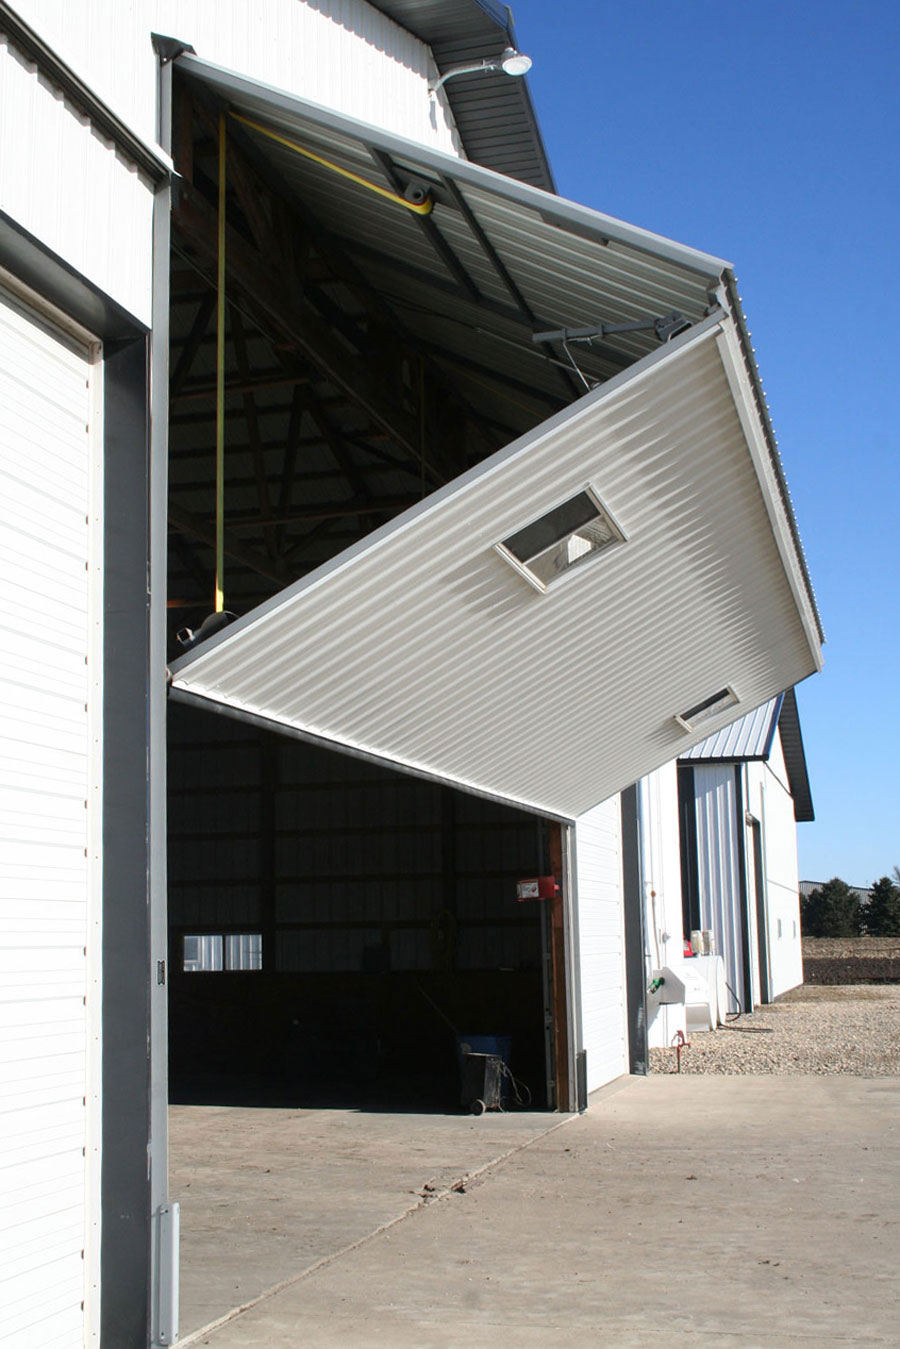 Bifold equipment shed door halfway open